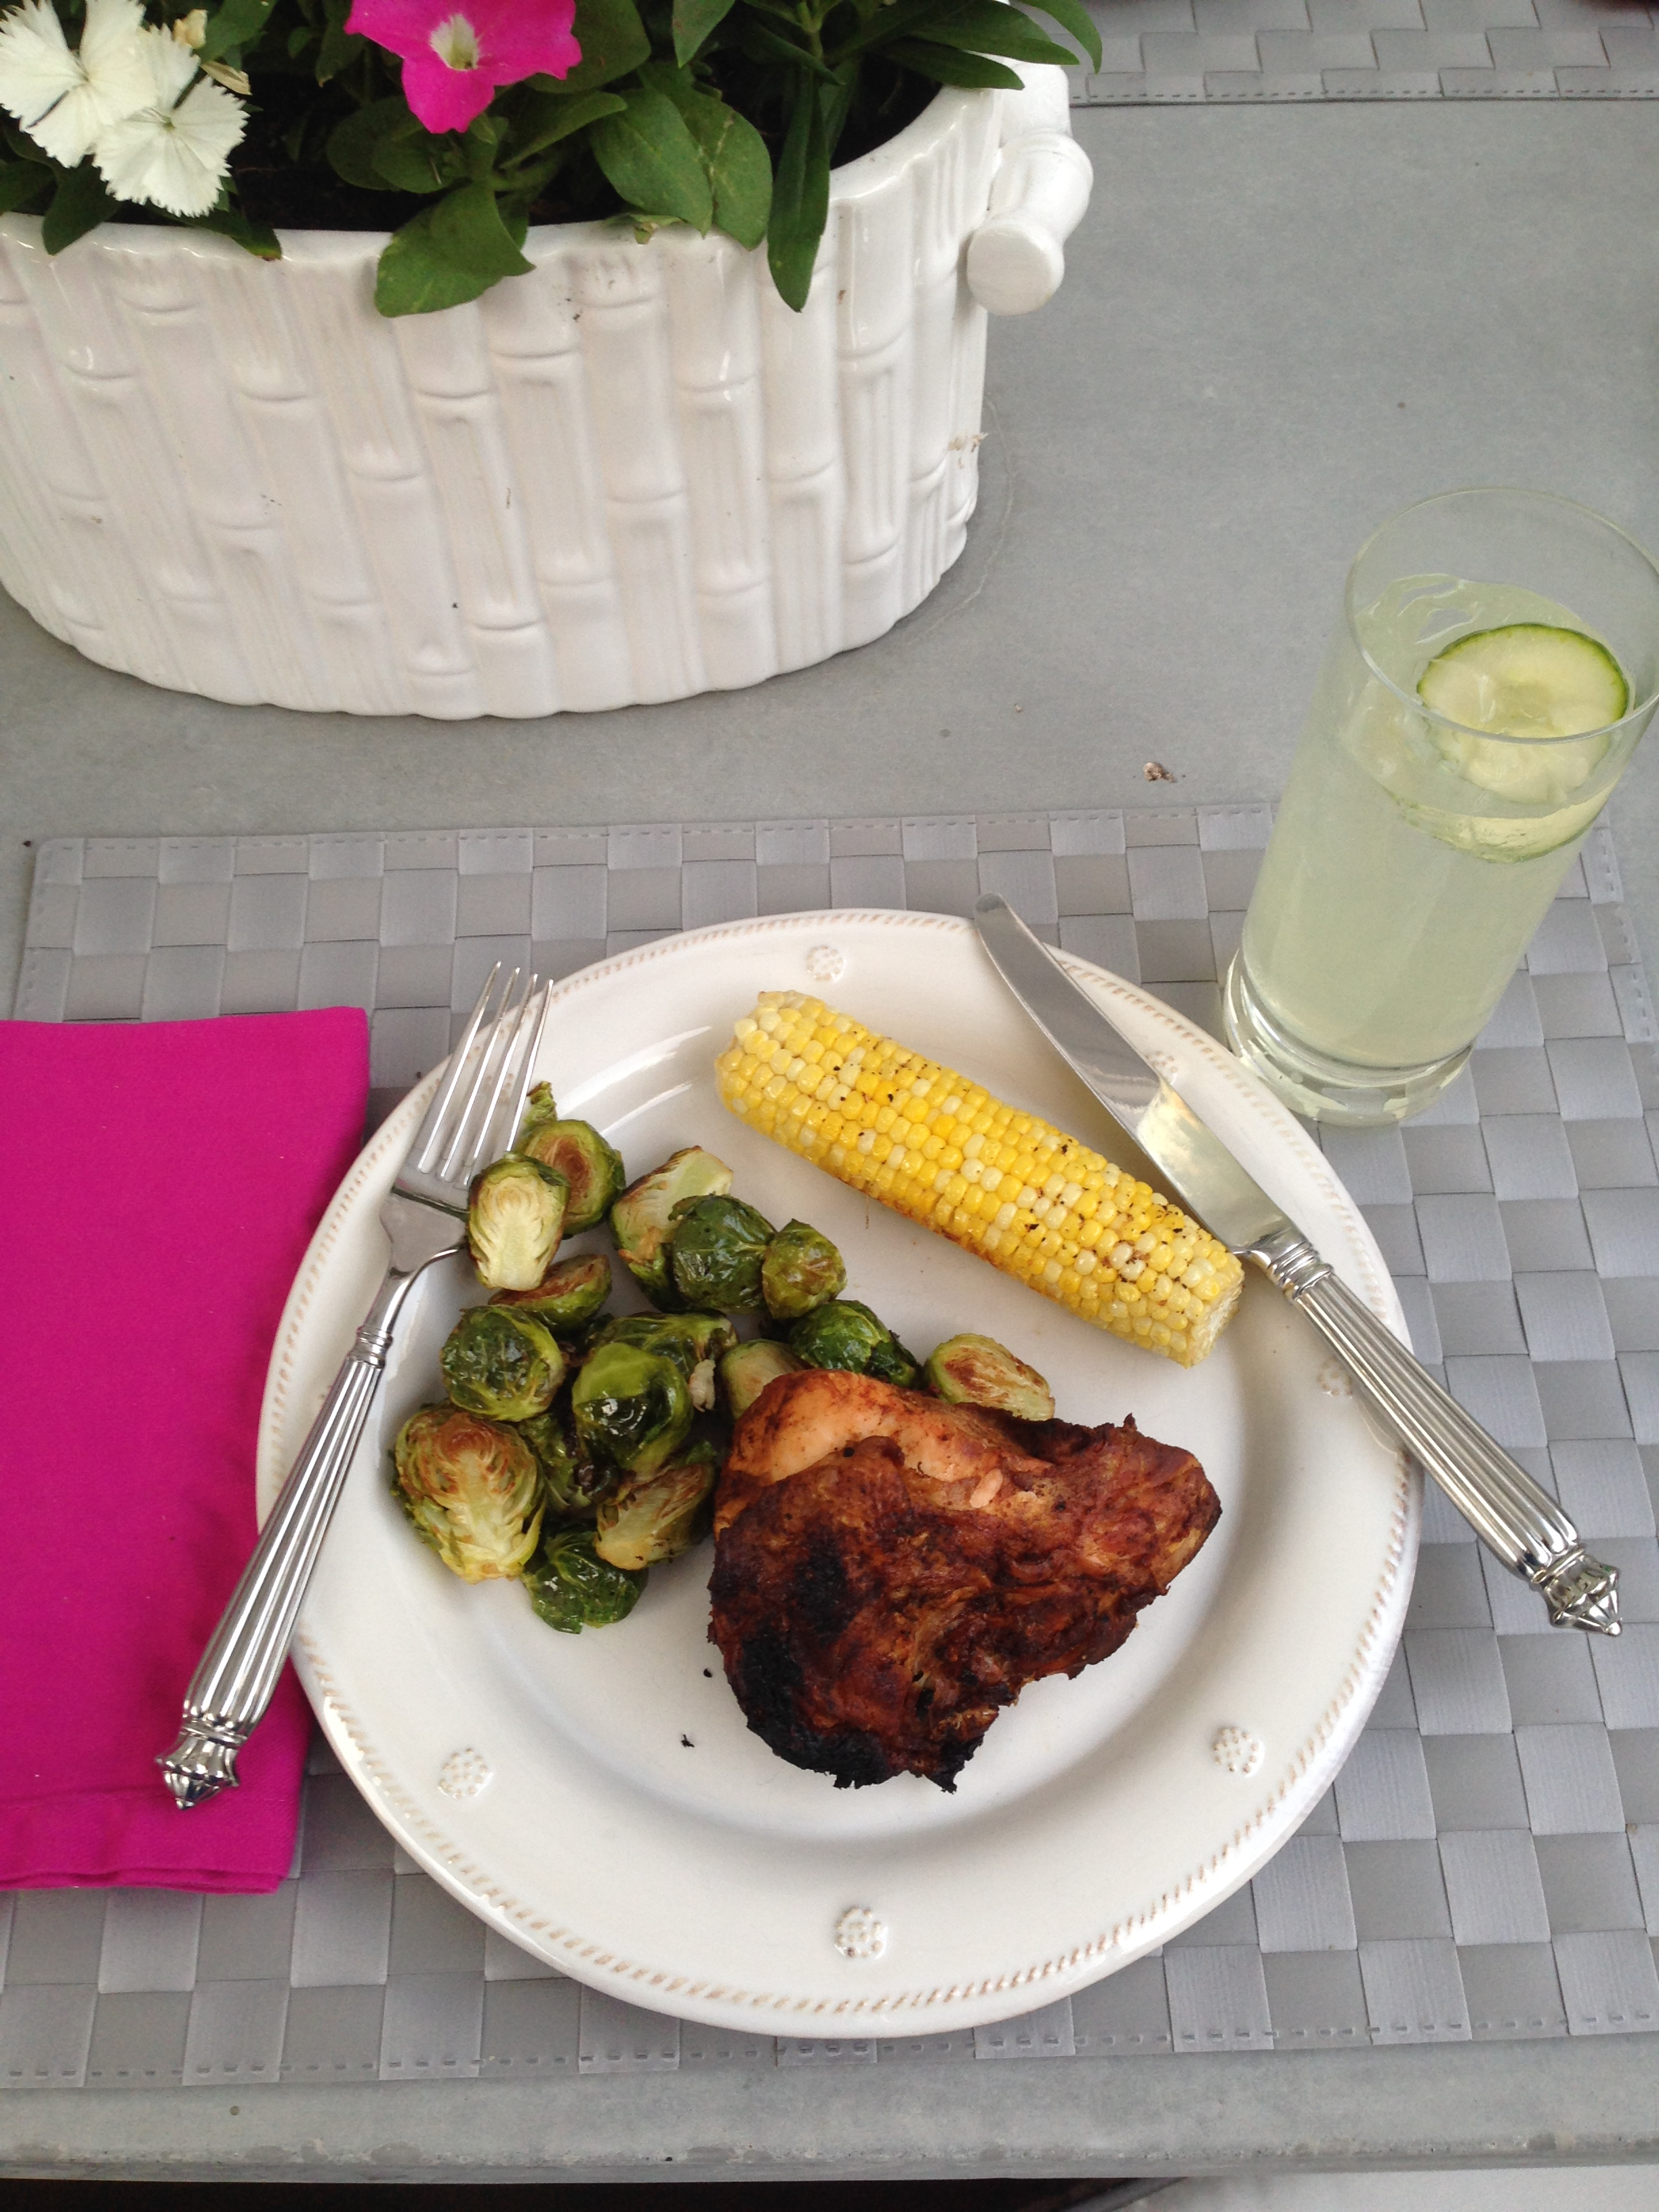 Outdoor Entertaining Menu: From the Grill